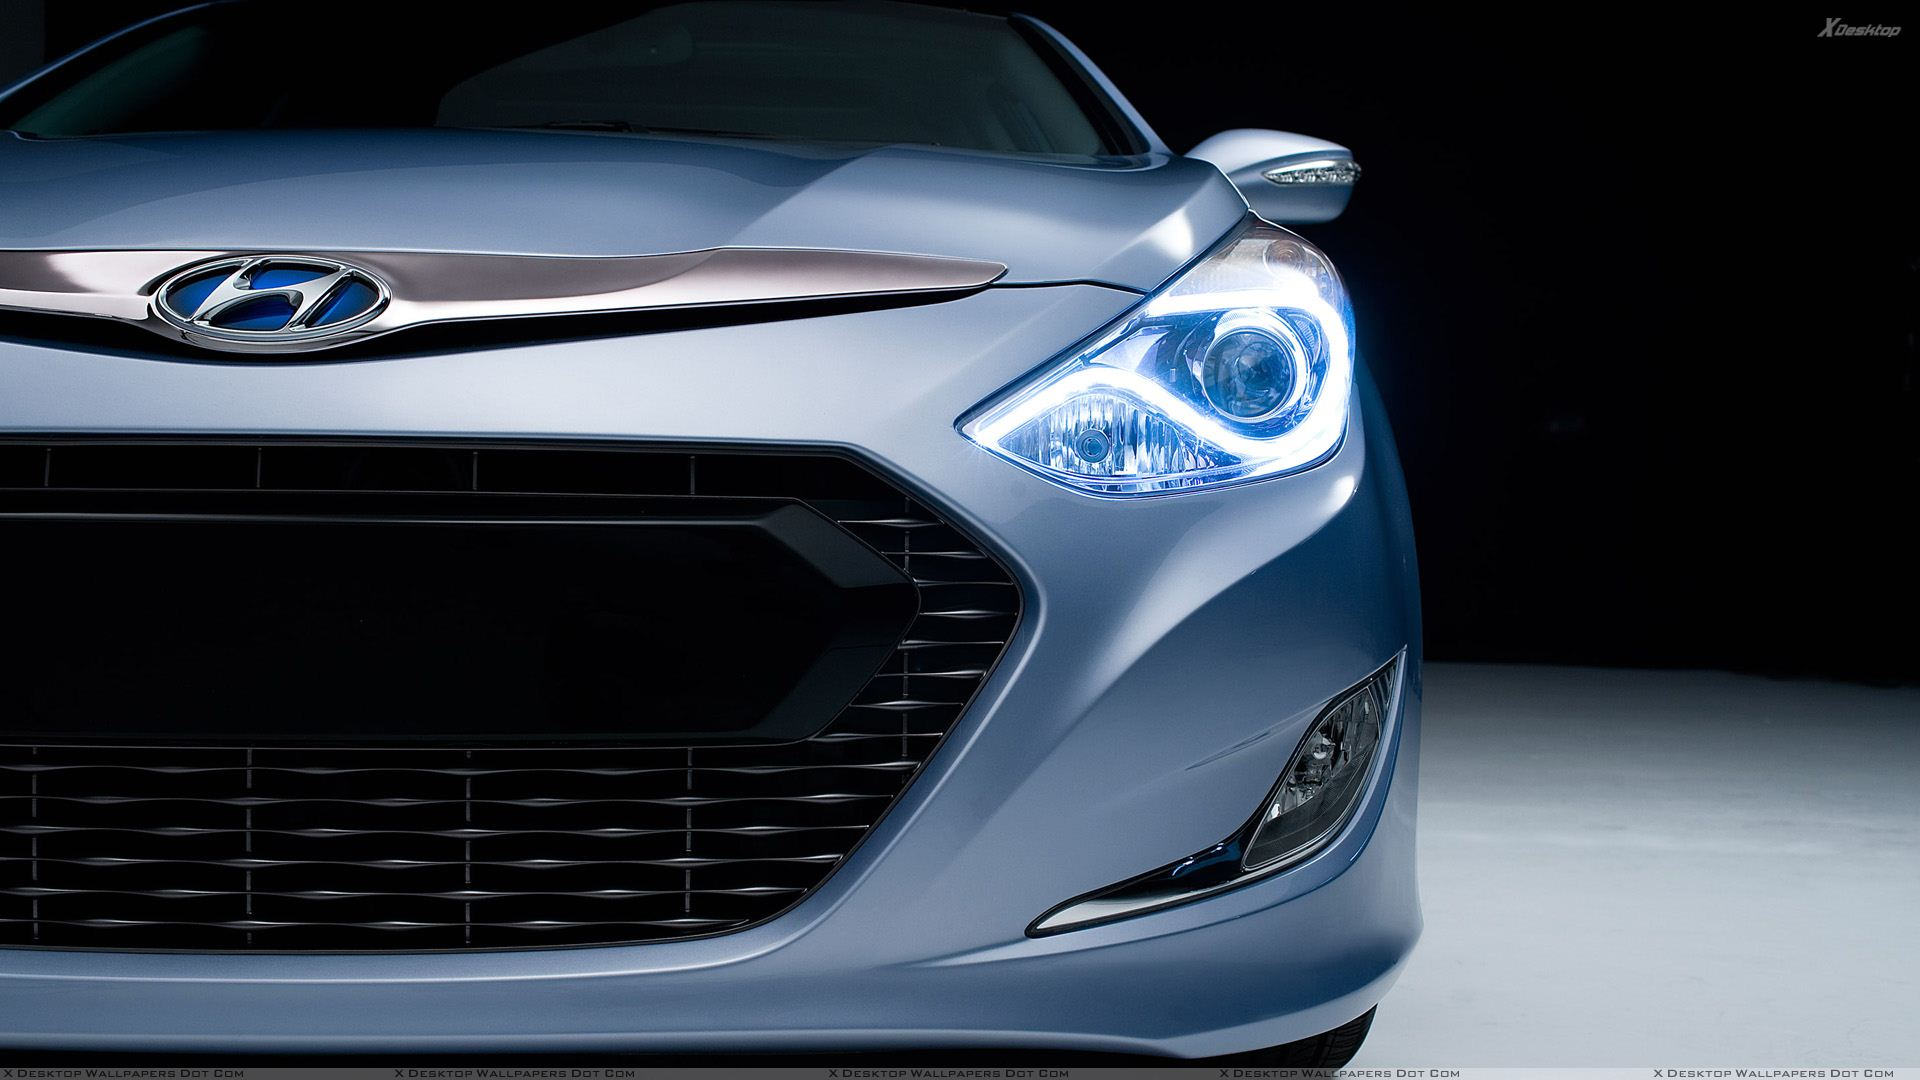 Car Headlights Wallpapers Photos Images In Hd